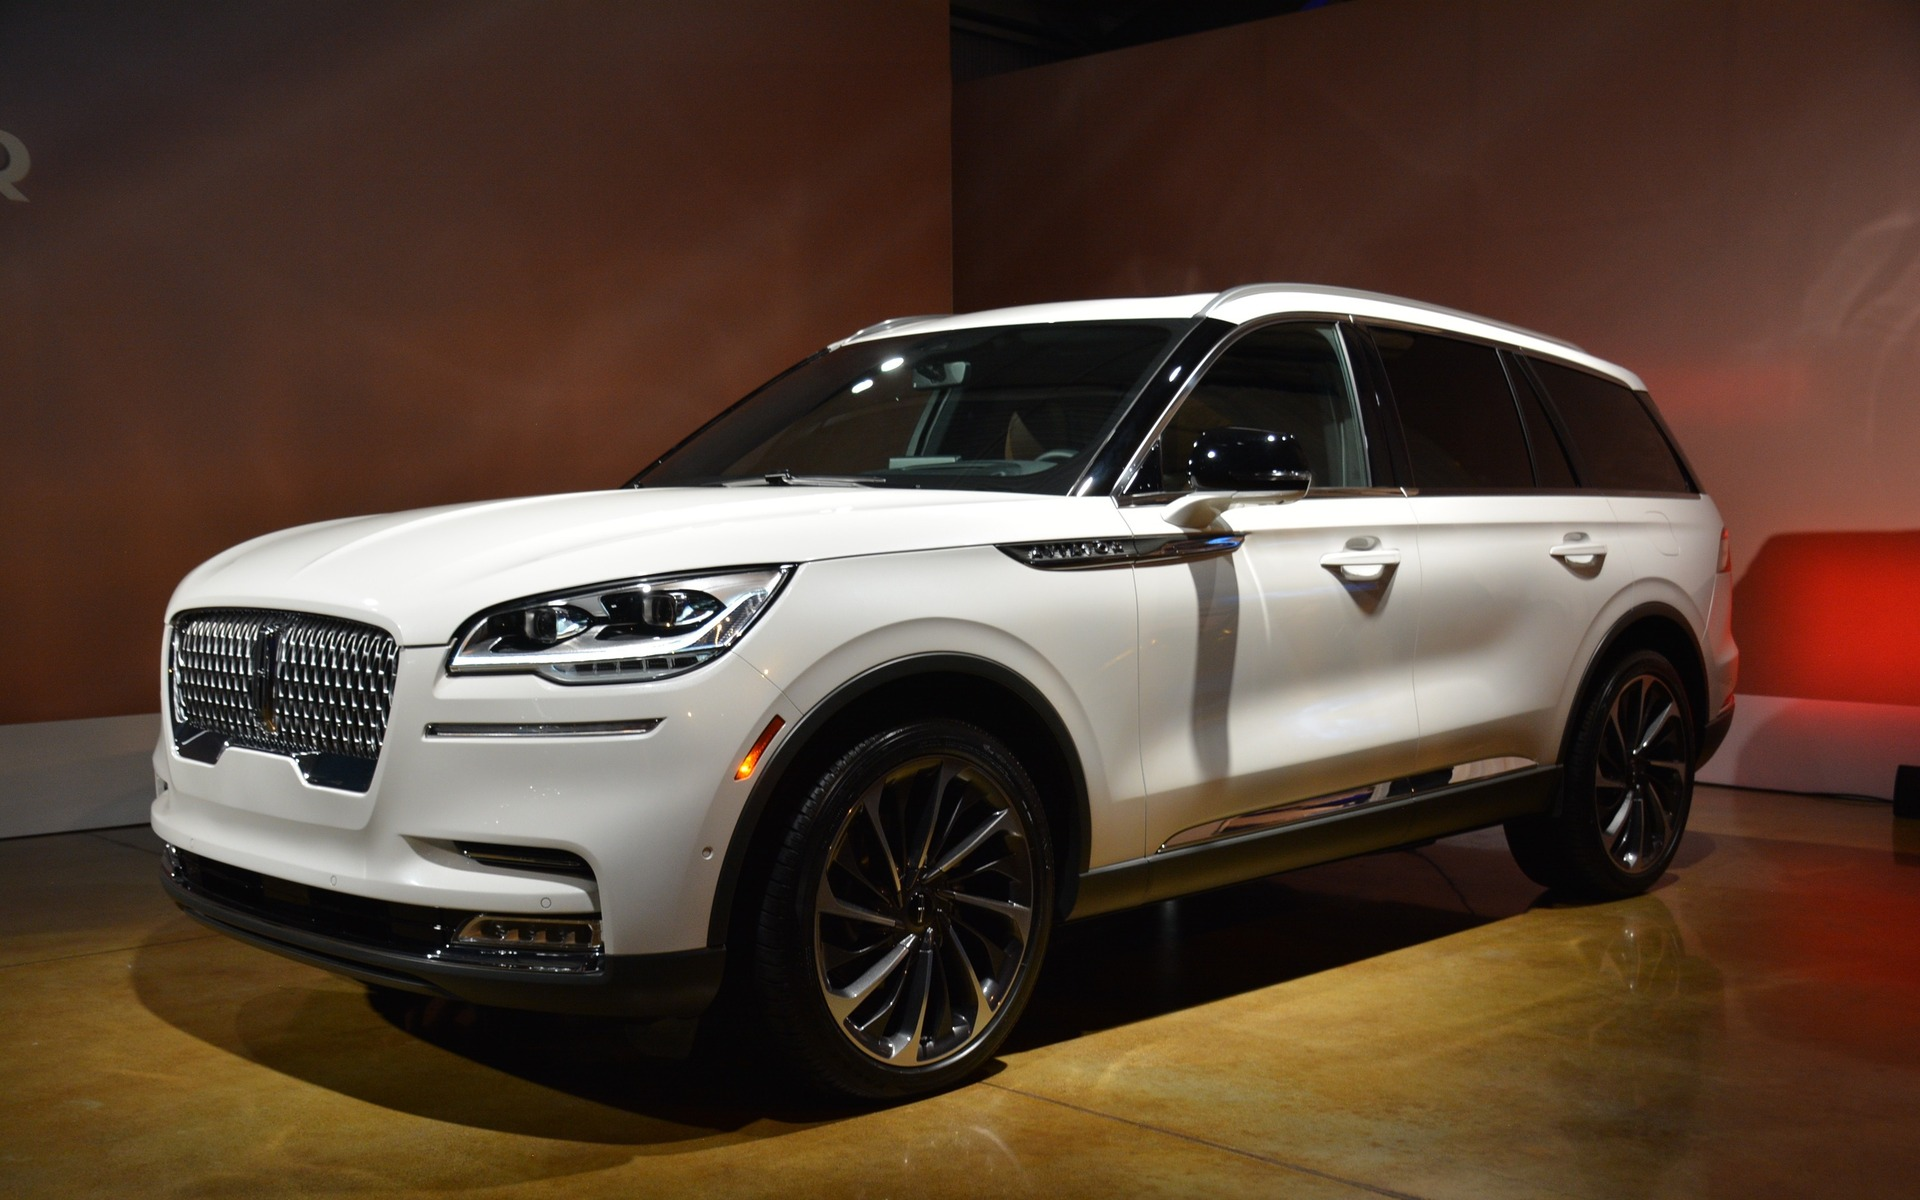 The all-new 2020 Lincoln Aviator